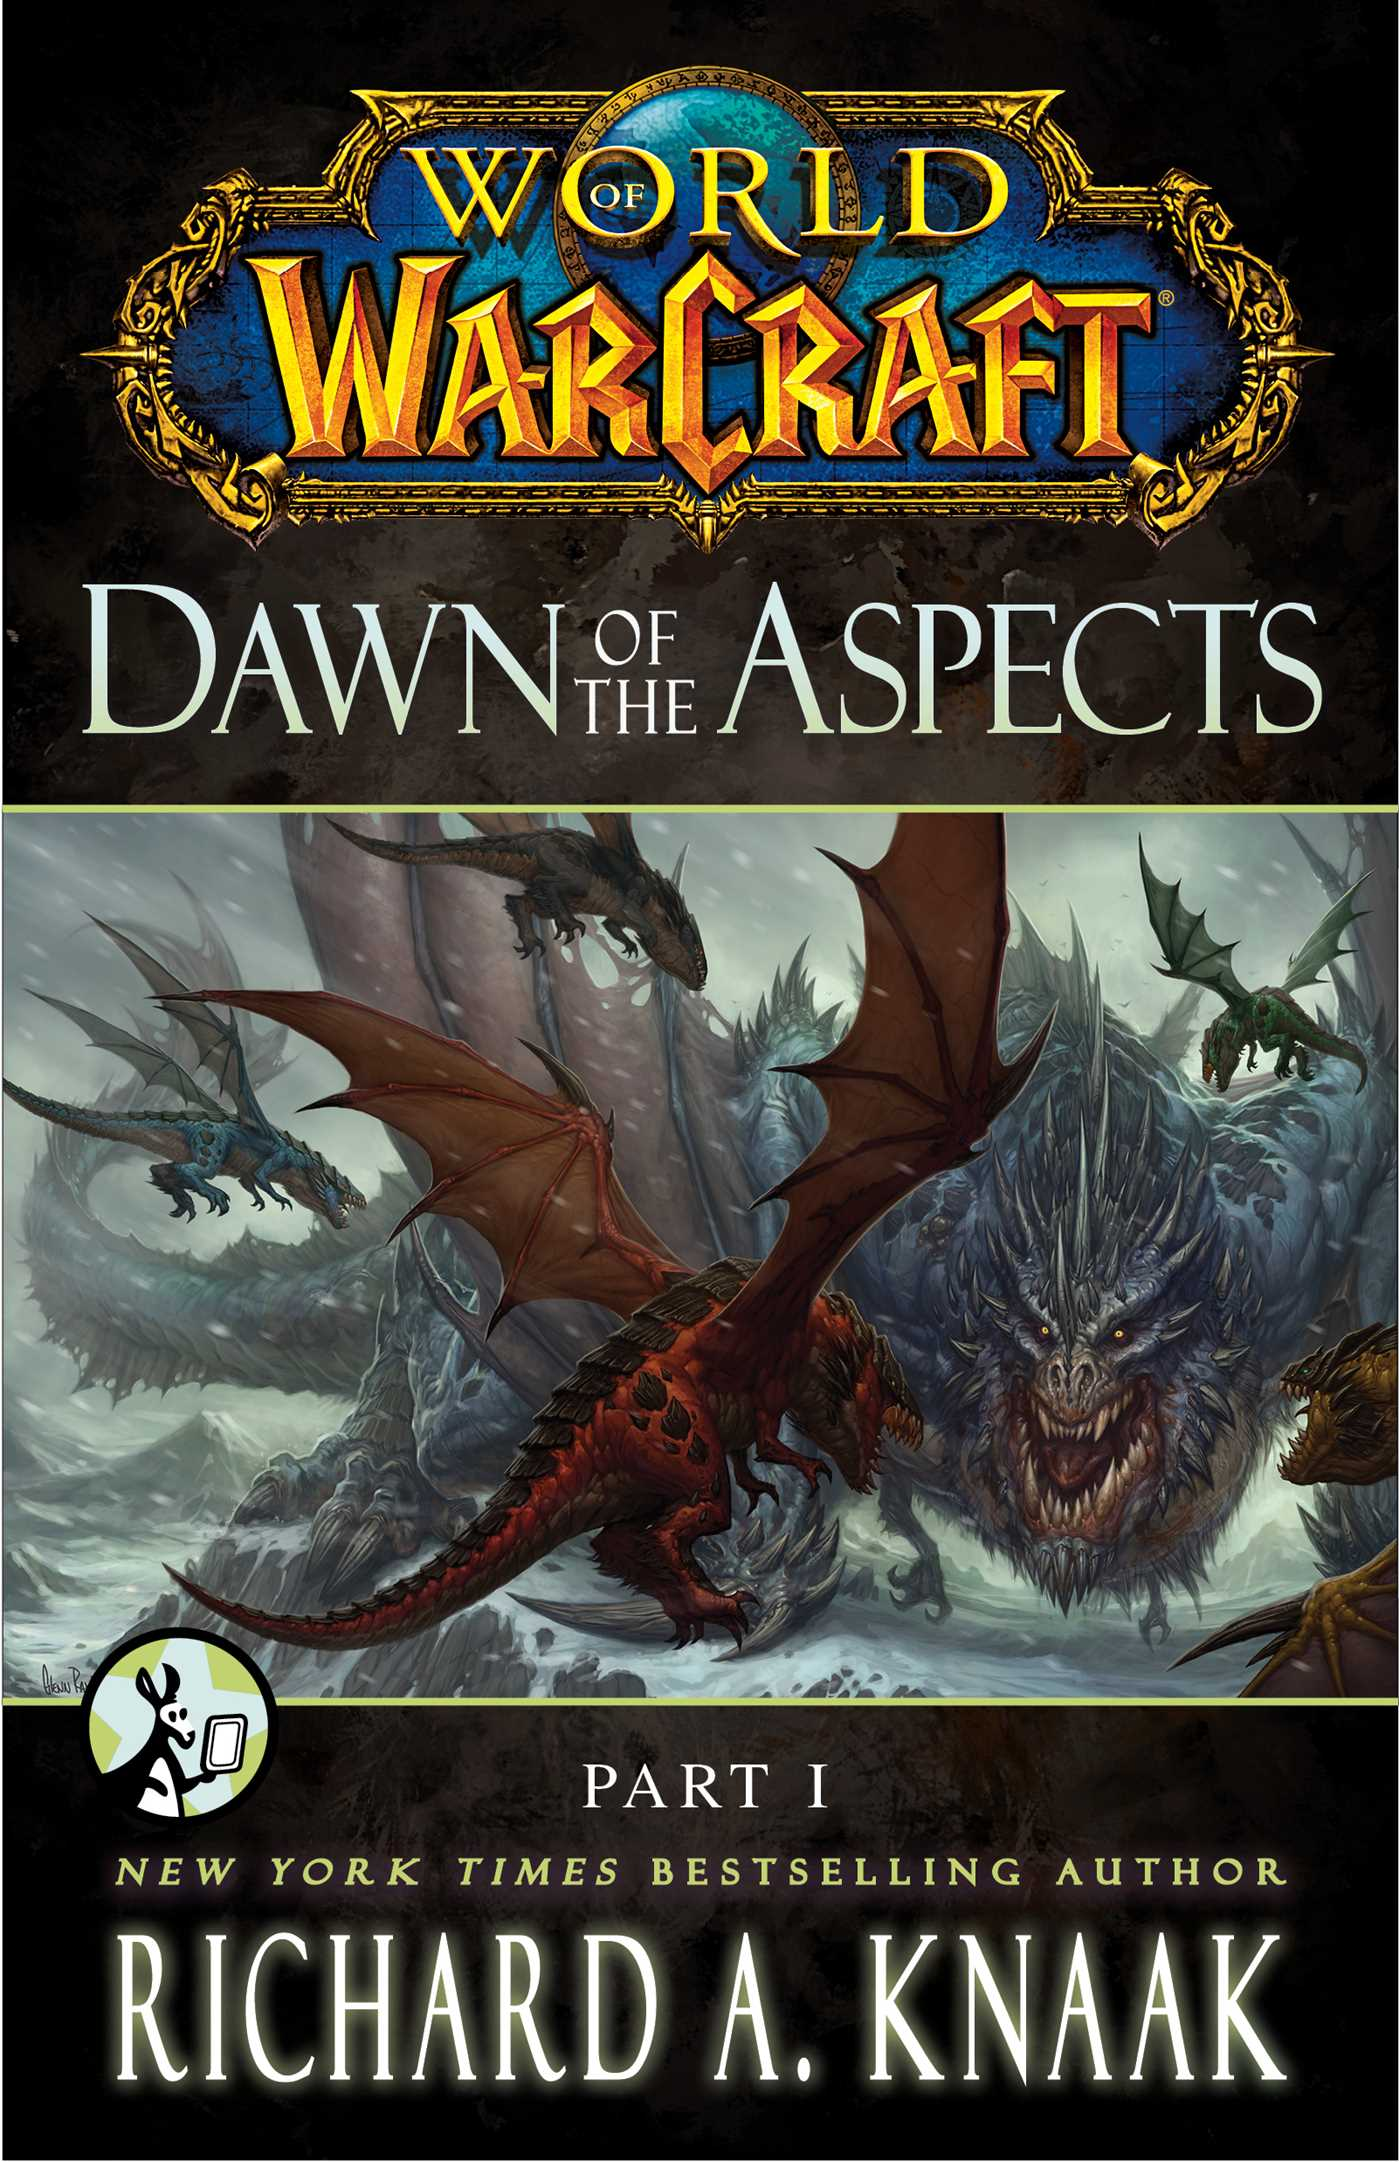 World of warcraft dawn of the aspects part i 9781416550693 hr